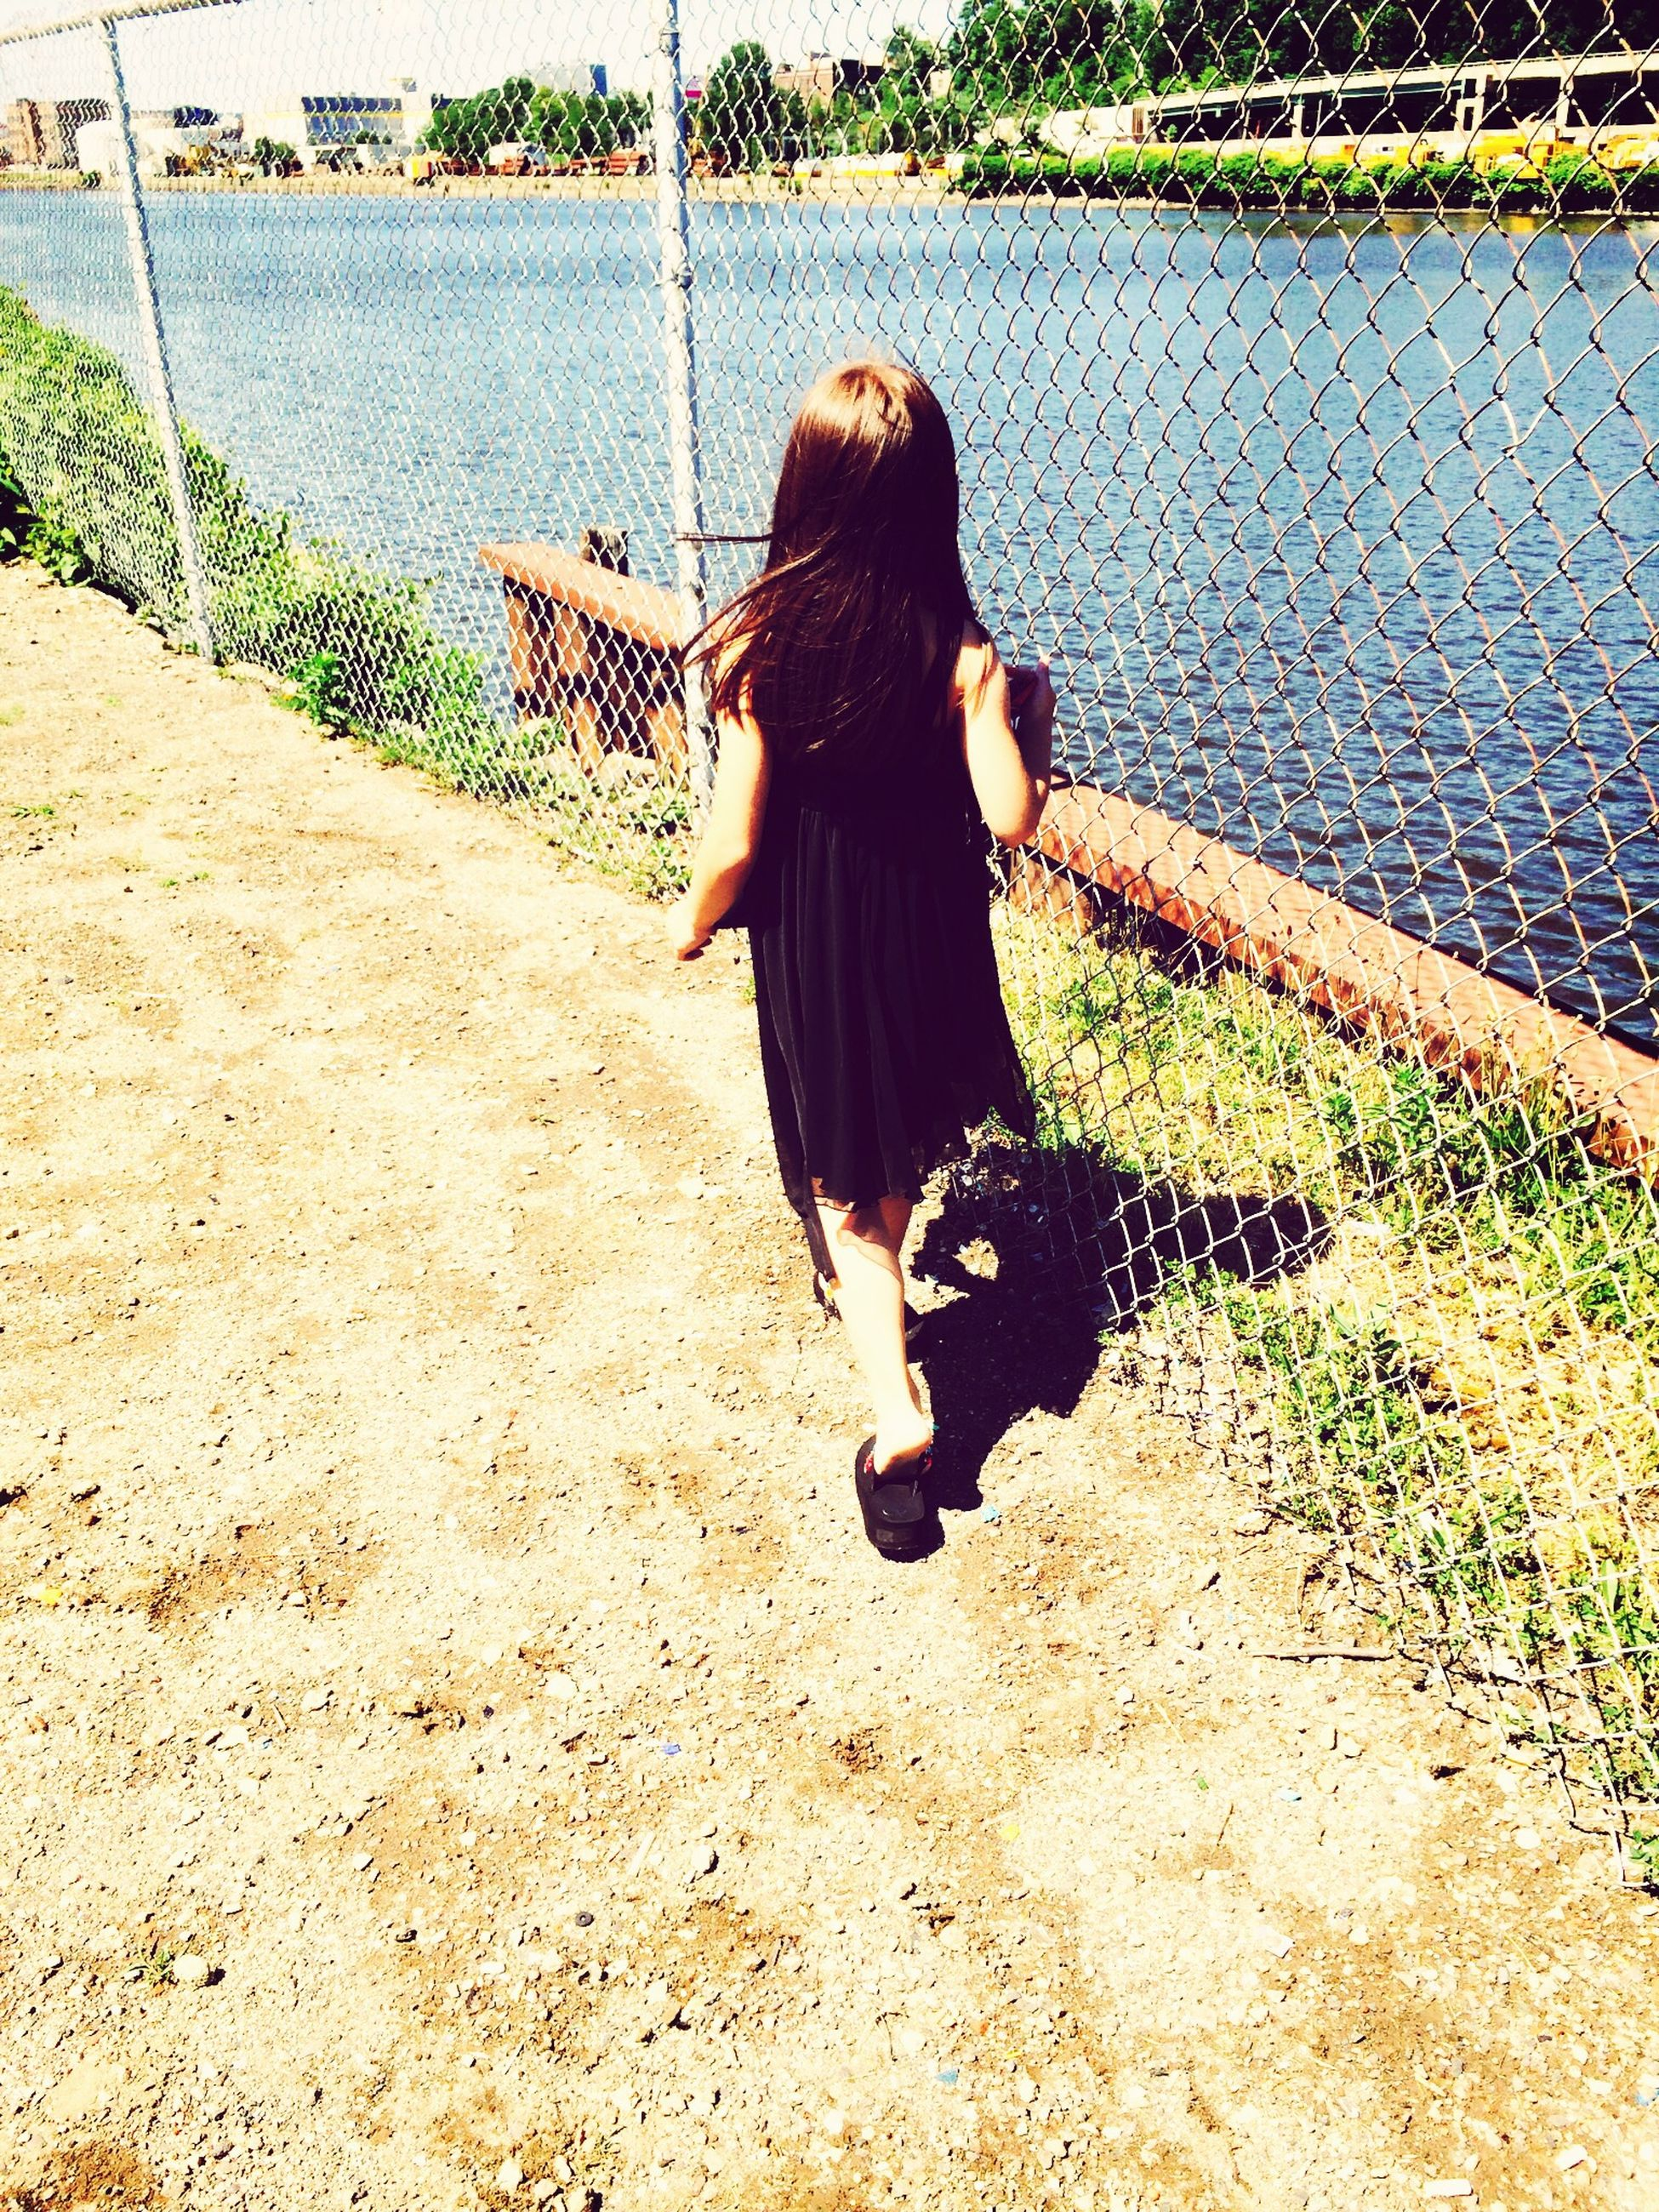 lifestyles, leisure activity, full length, rear view, casual clothing, person, standing, long hair, shadow, young women, high angle view, walking, sitting, sunlight, outdoors, day, water, plant